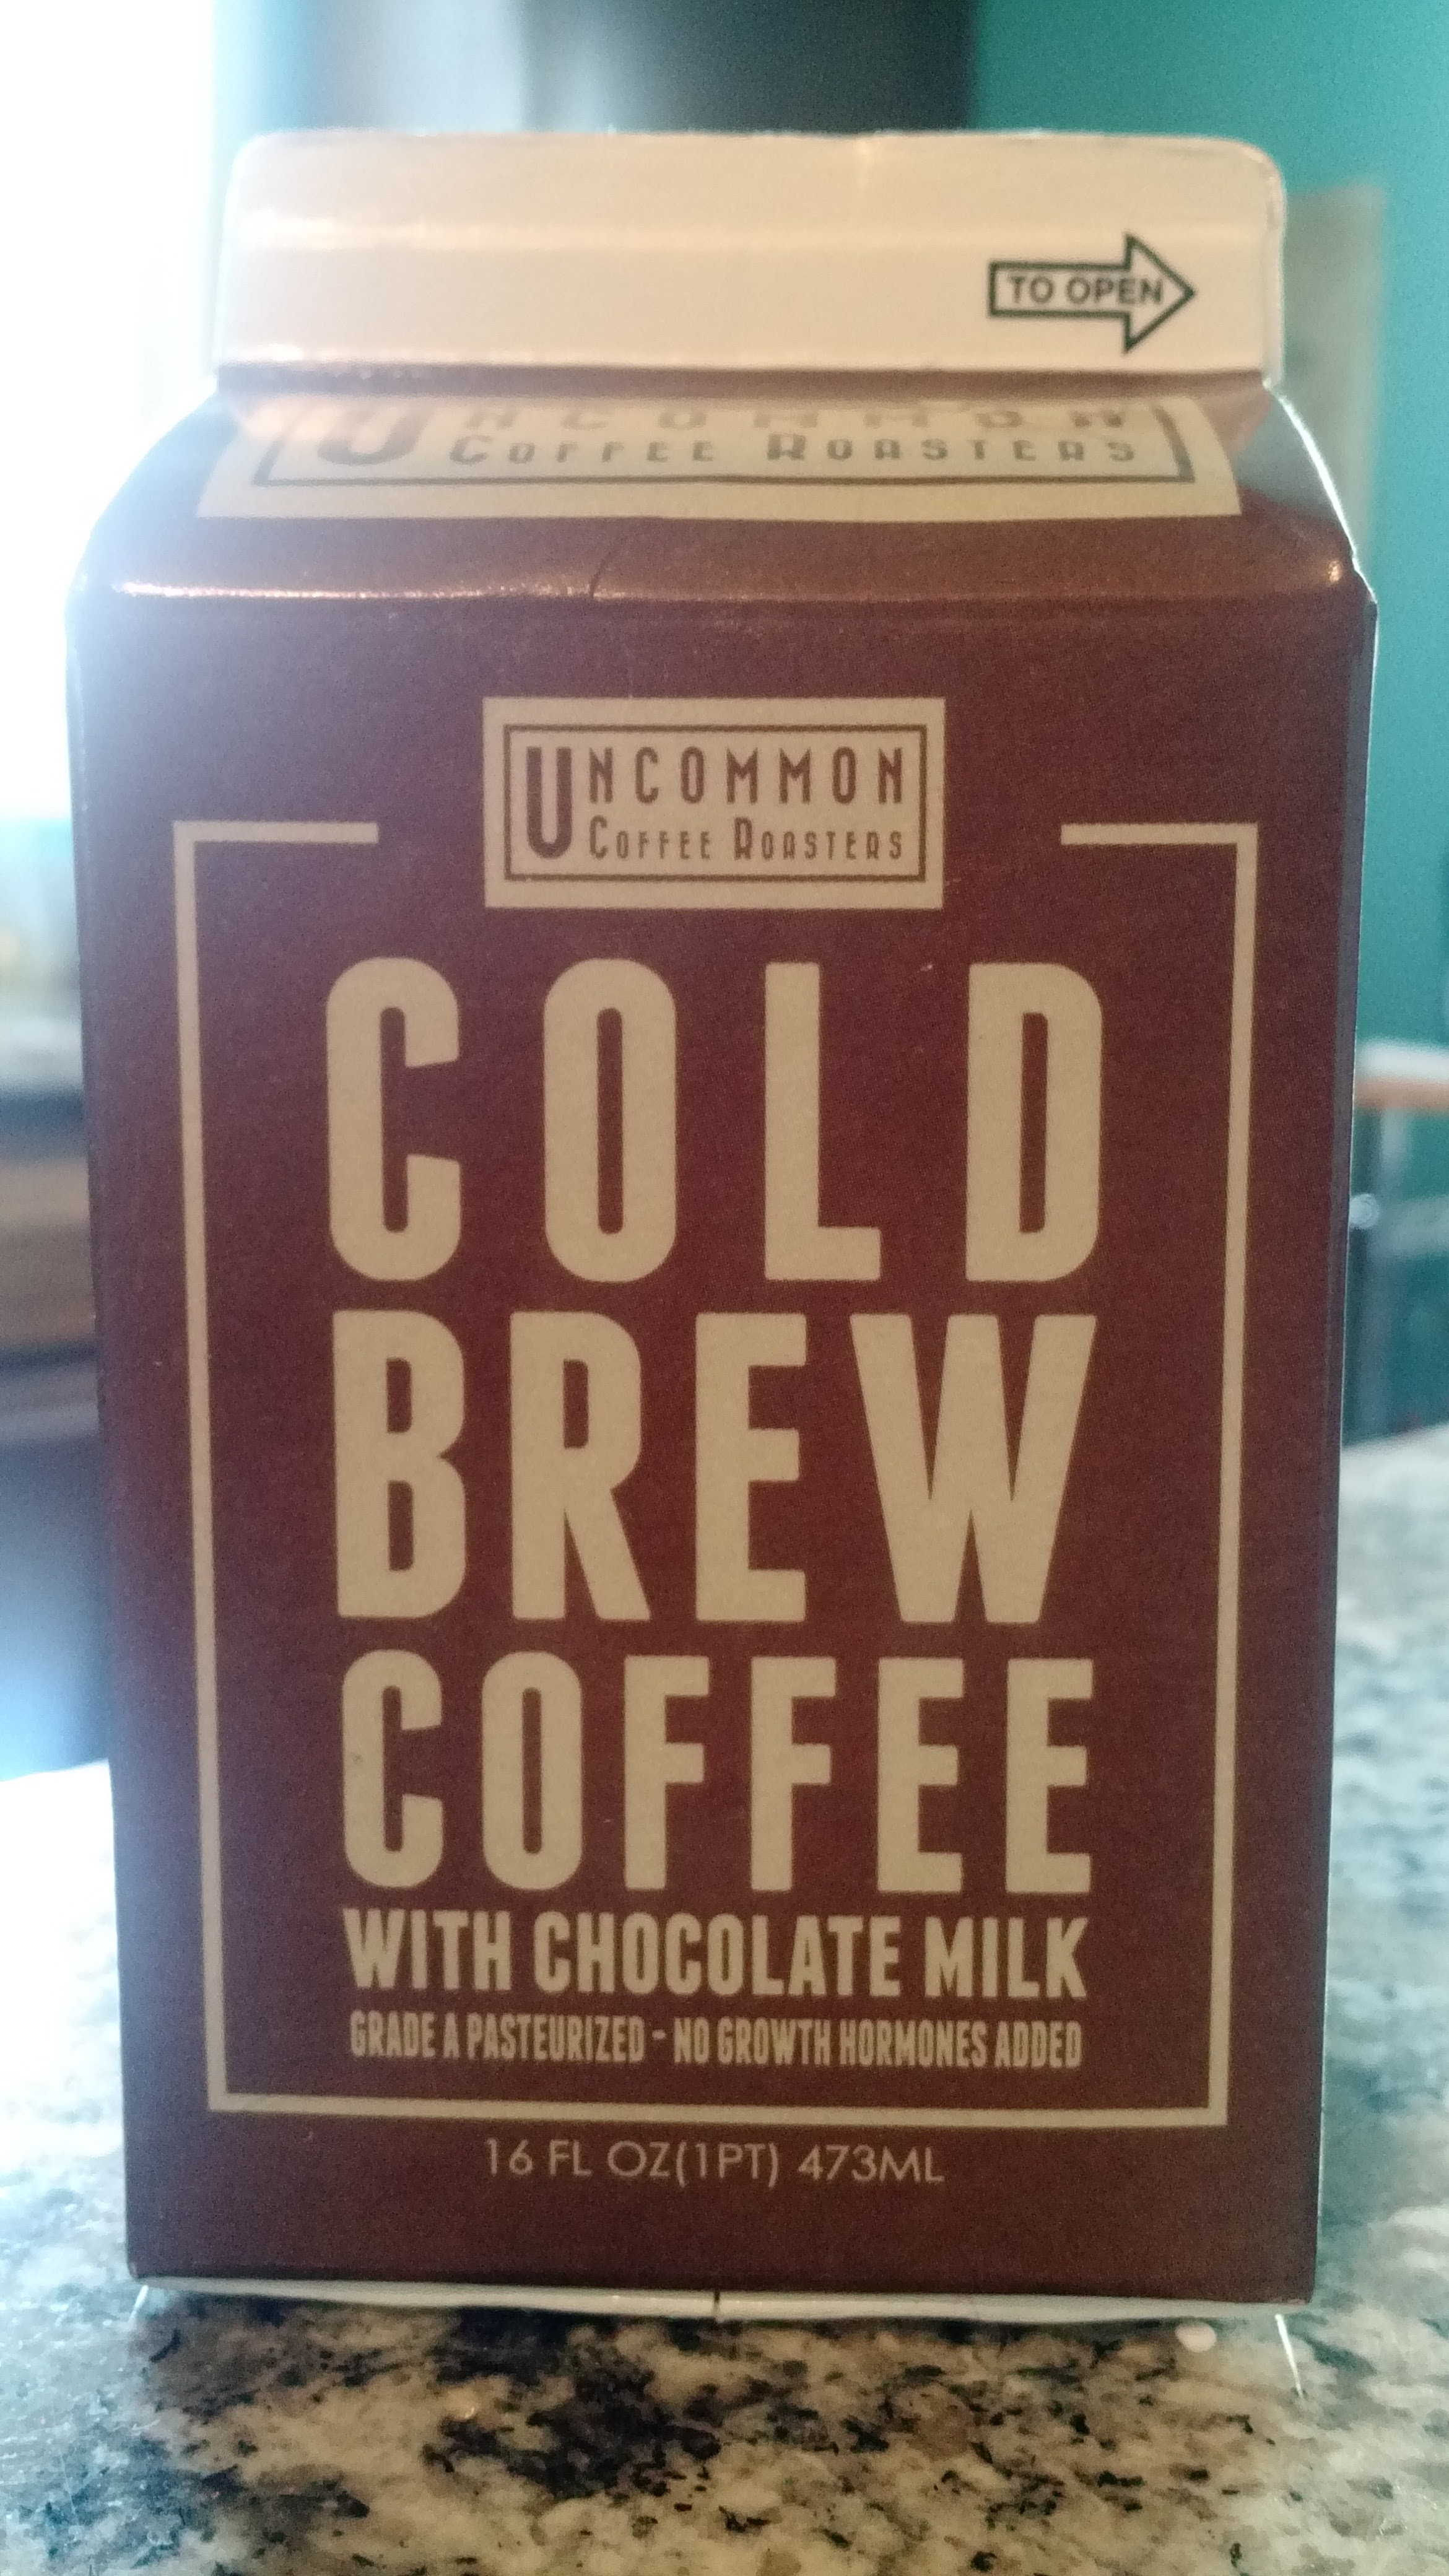 Thirsty dudes uncommon coffee roasters cold brew coffee chocolate uncommon coffee roasters cold brew coffee chocolate milk malvernweather Choice Image